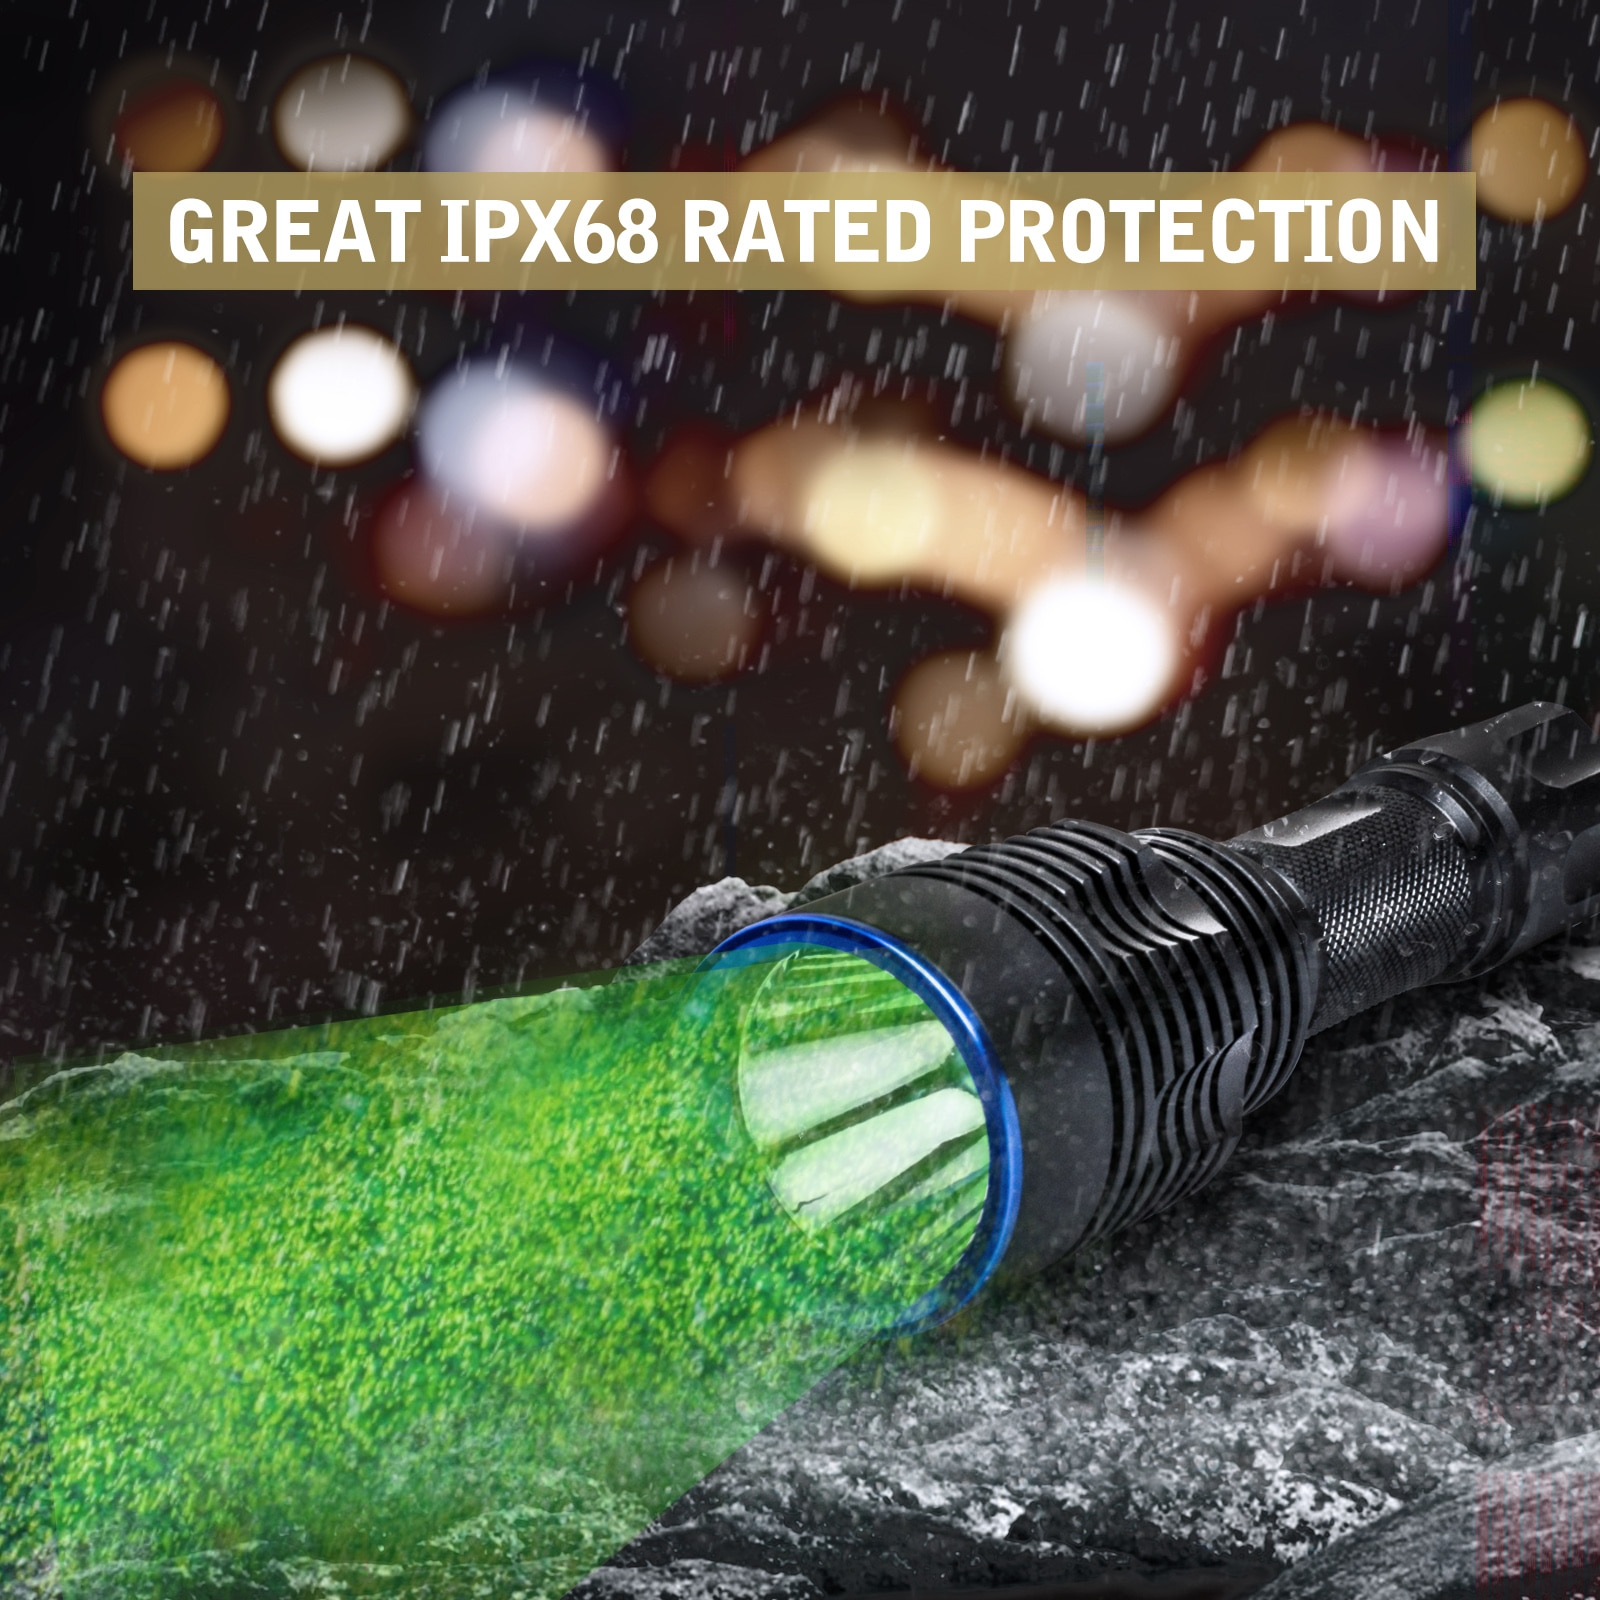 Skywalker Tactical Flashlight 1586 yards green hunting  Weapon lights KP CSLNM1.F1 for long-distance night hunting UC20 enlarge